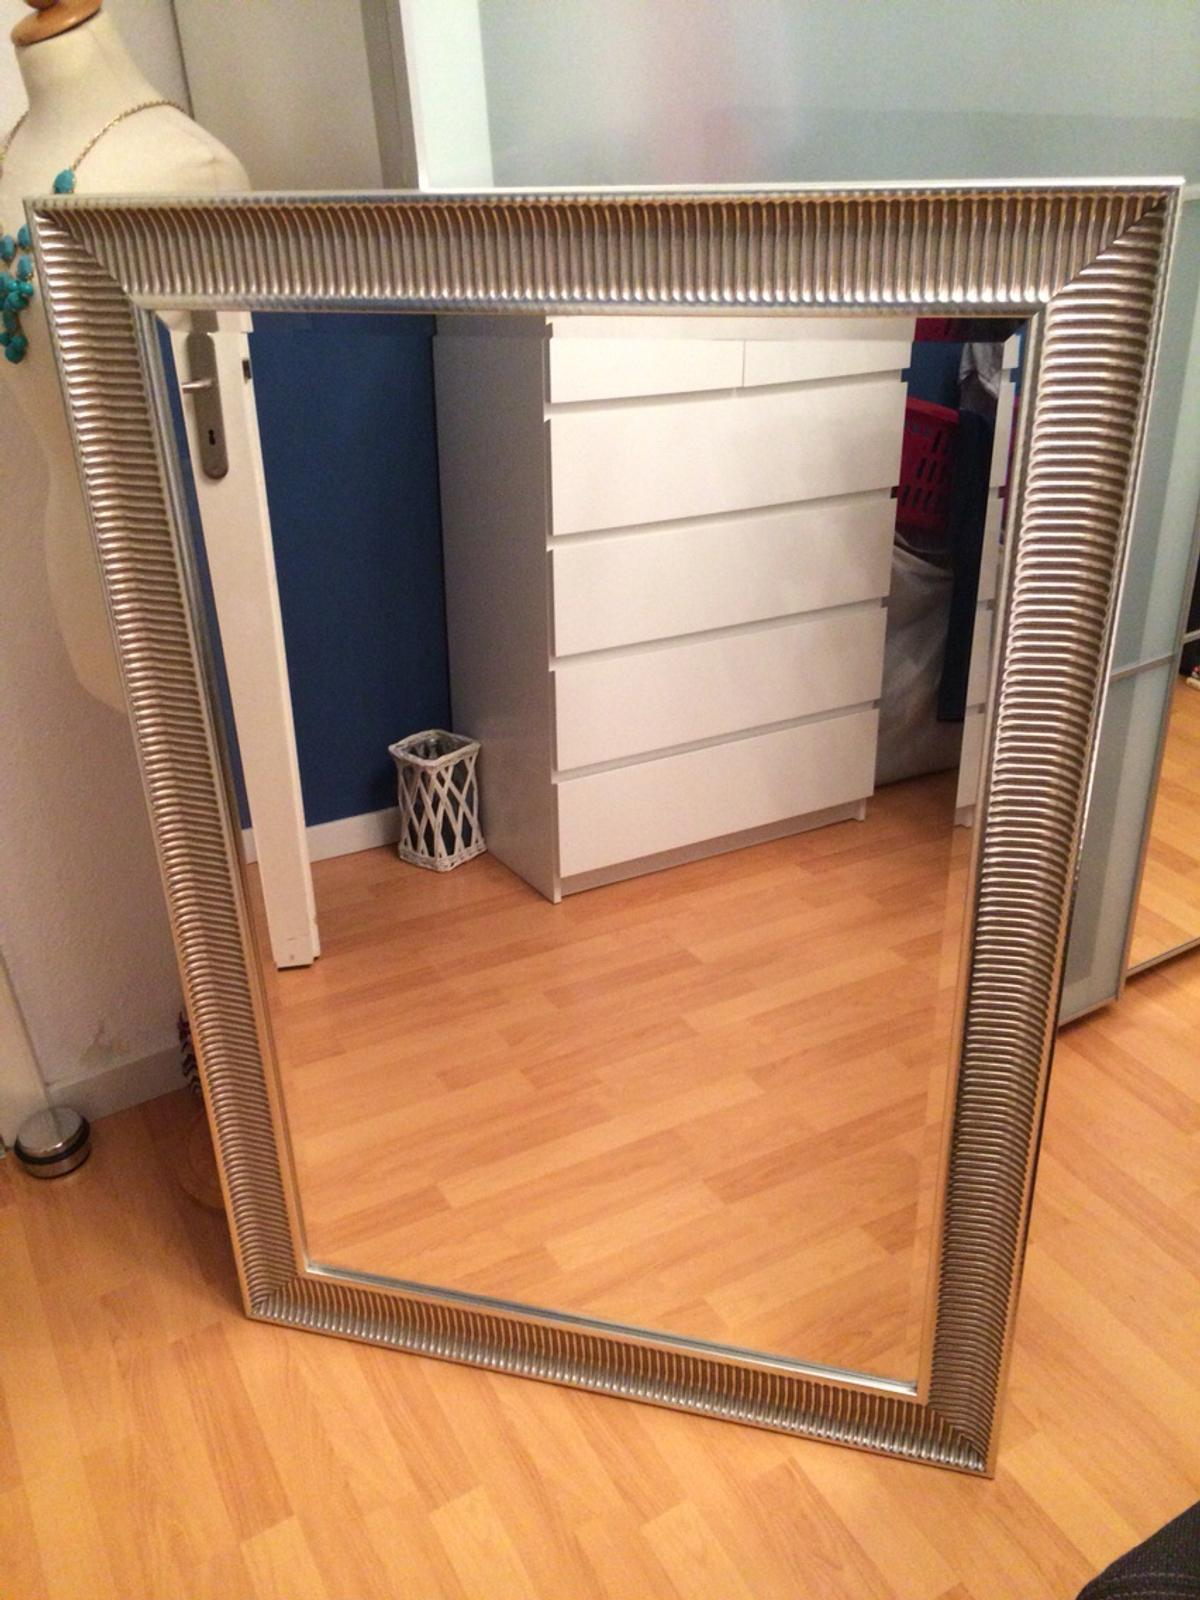 Spiegel Ikea Songe In 50733 Koln For EUR4000 Sale